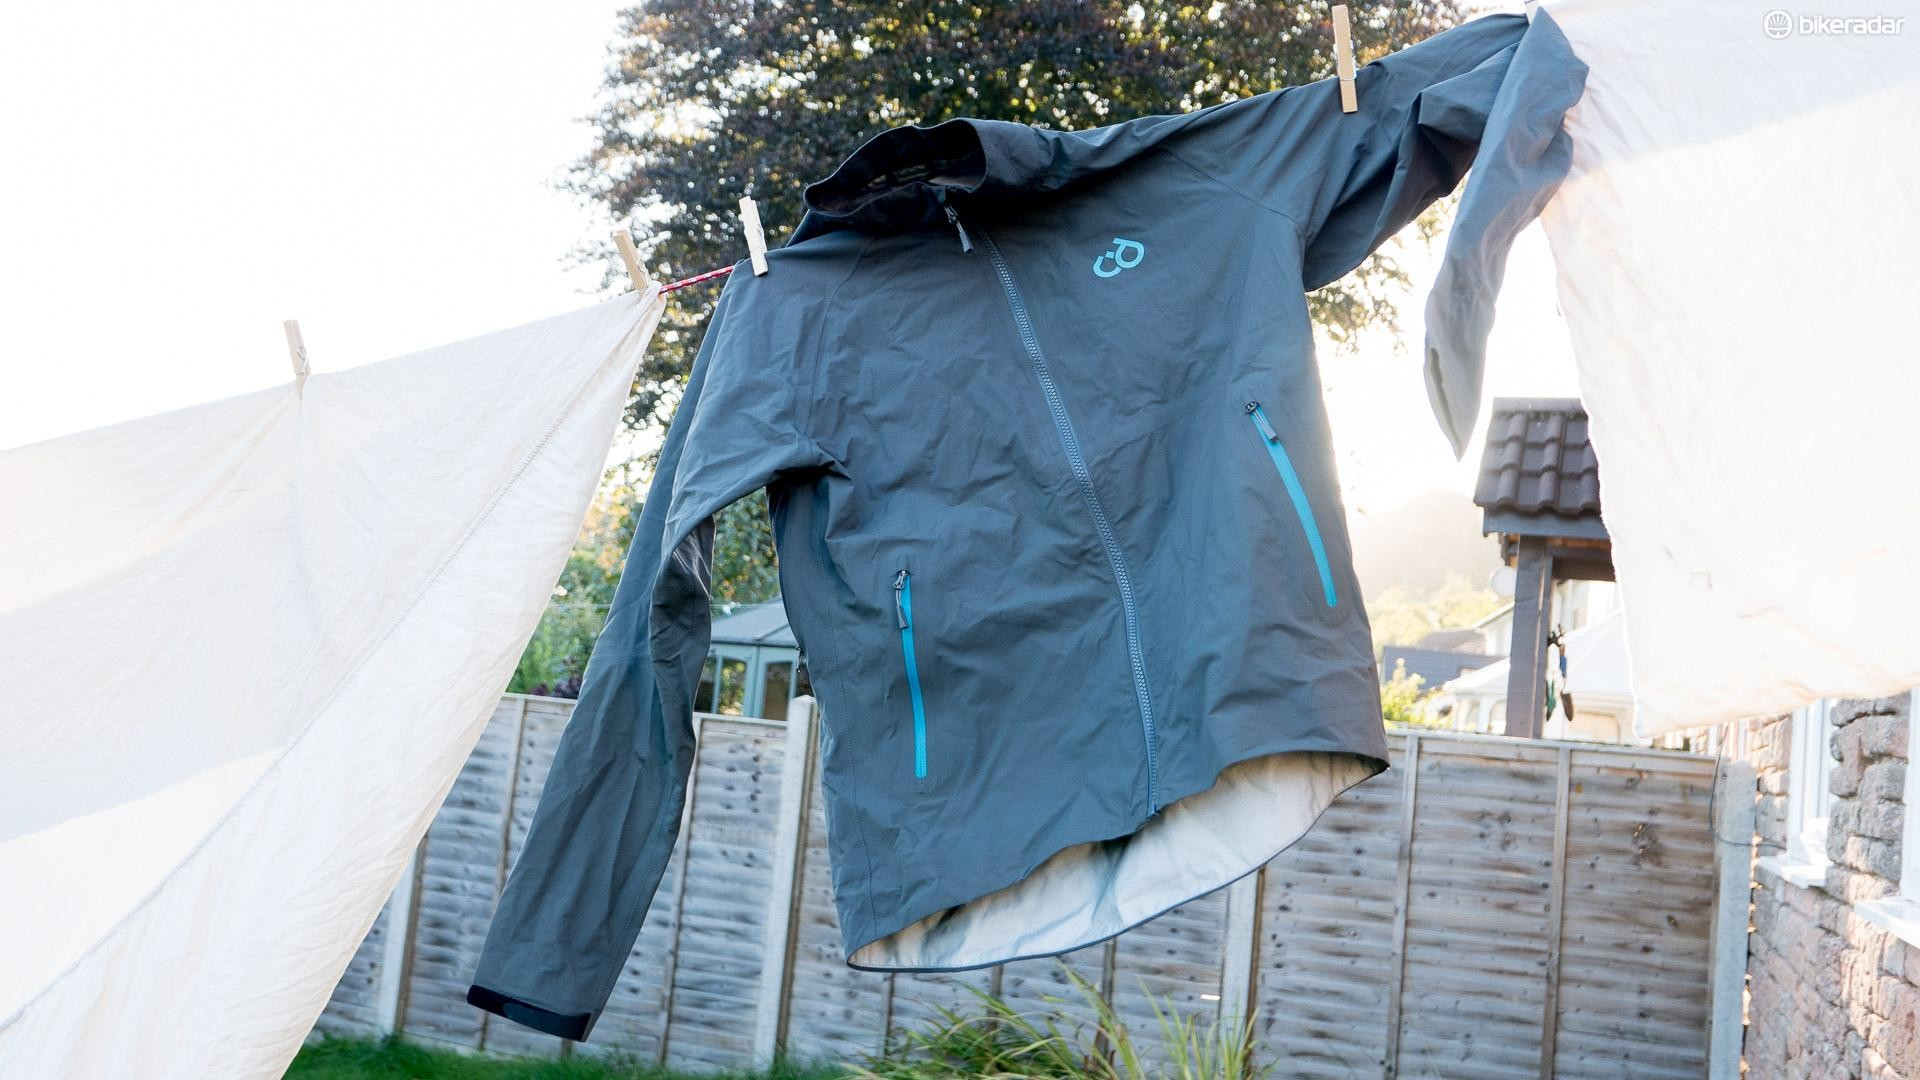 The Upper Downs Neo jacket comes from a reassuringly soggy part of the UK